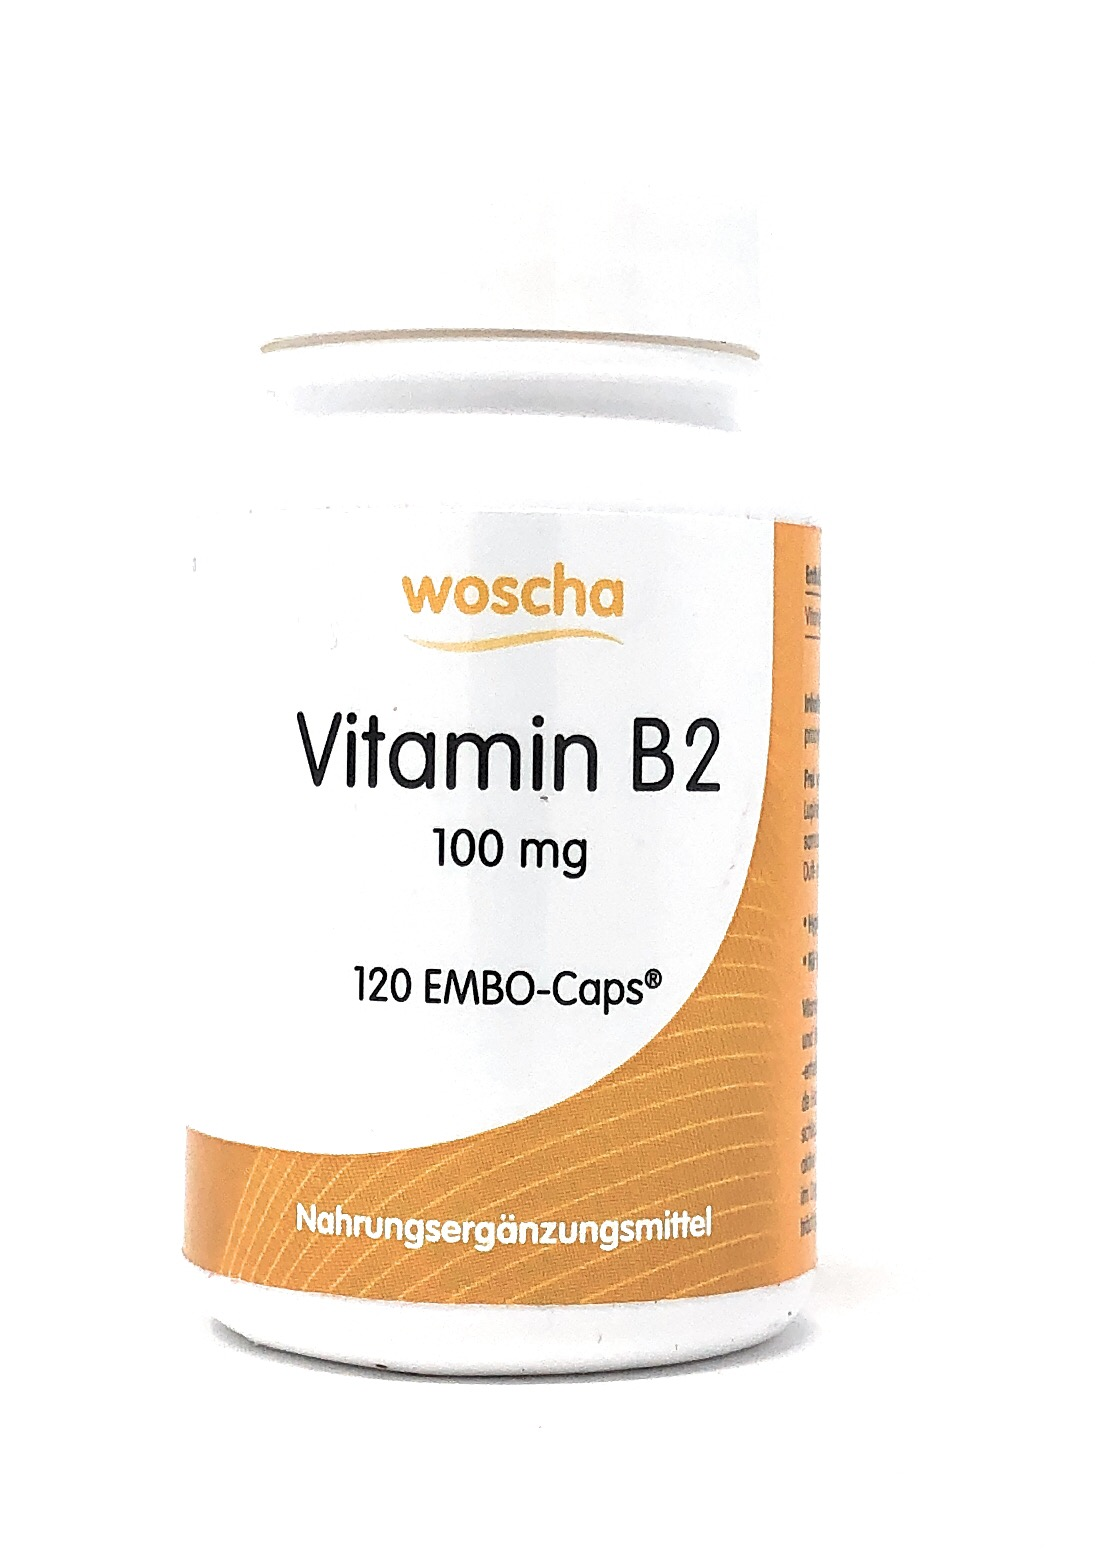 woscha Vitamin B2 100mg  120 EMBO-Caps® (21g)(vegan)